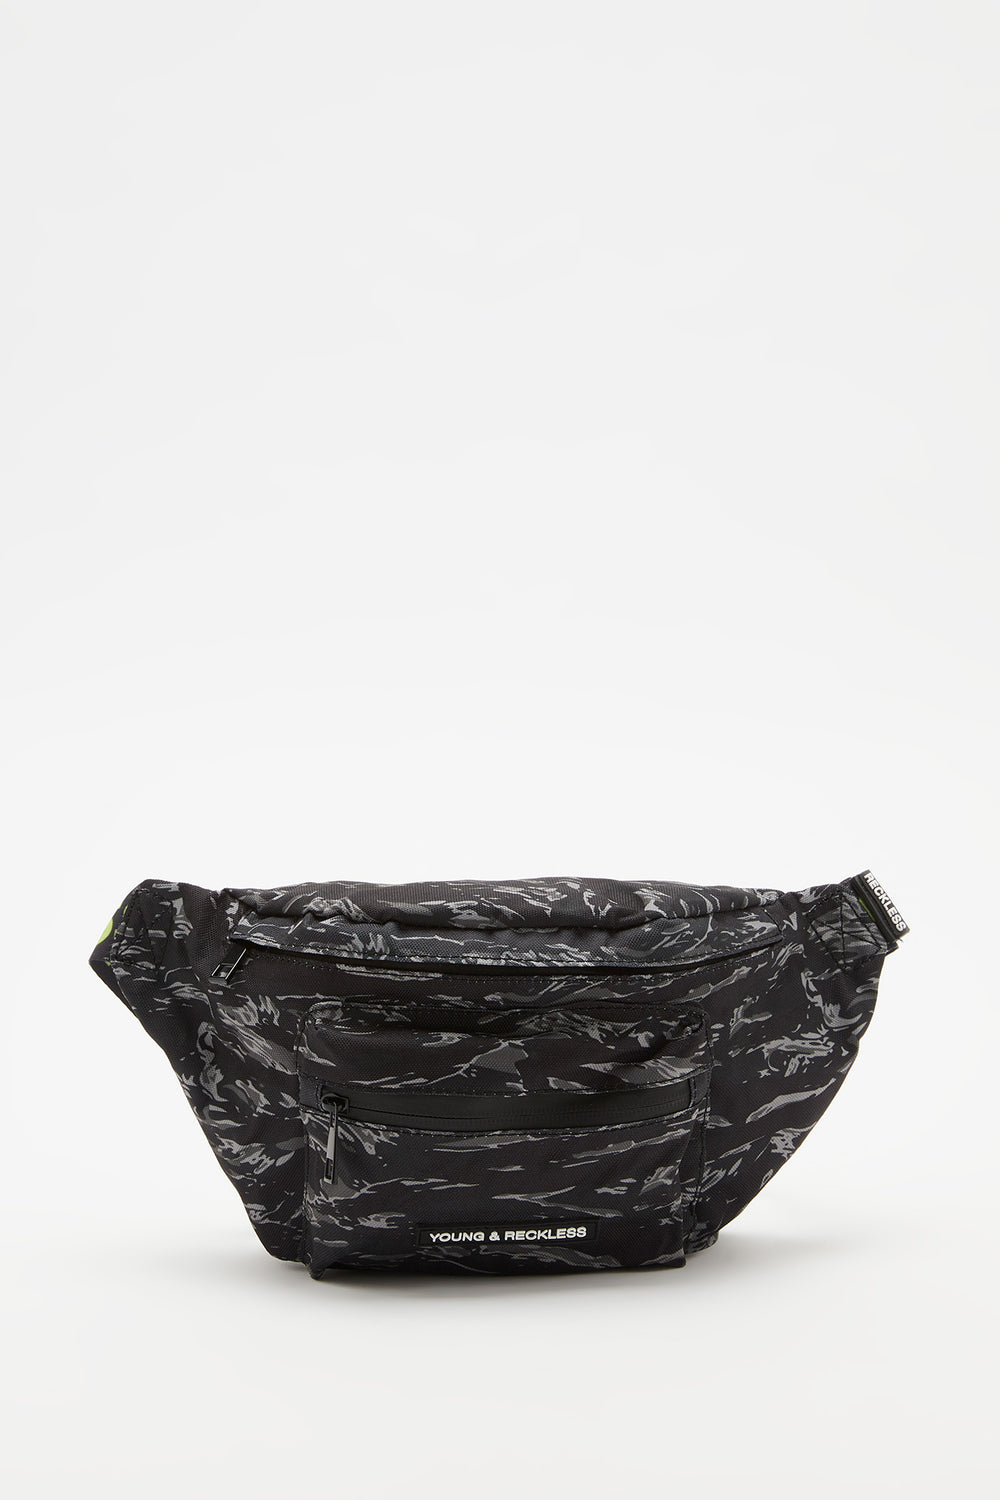 Sac Banane Camouflage Young & Reckless Noir